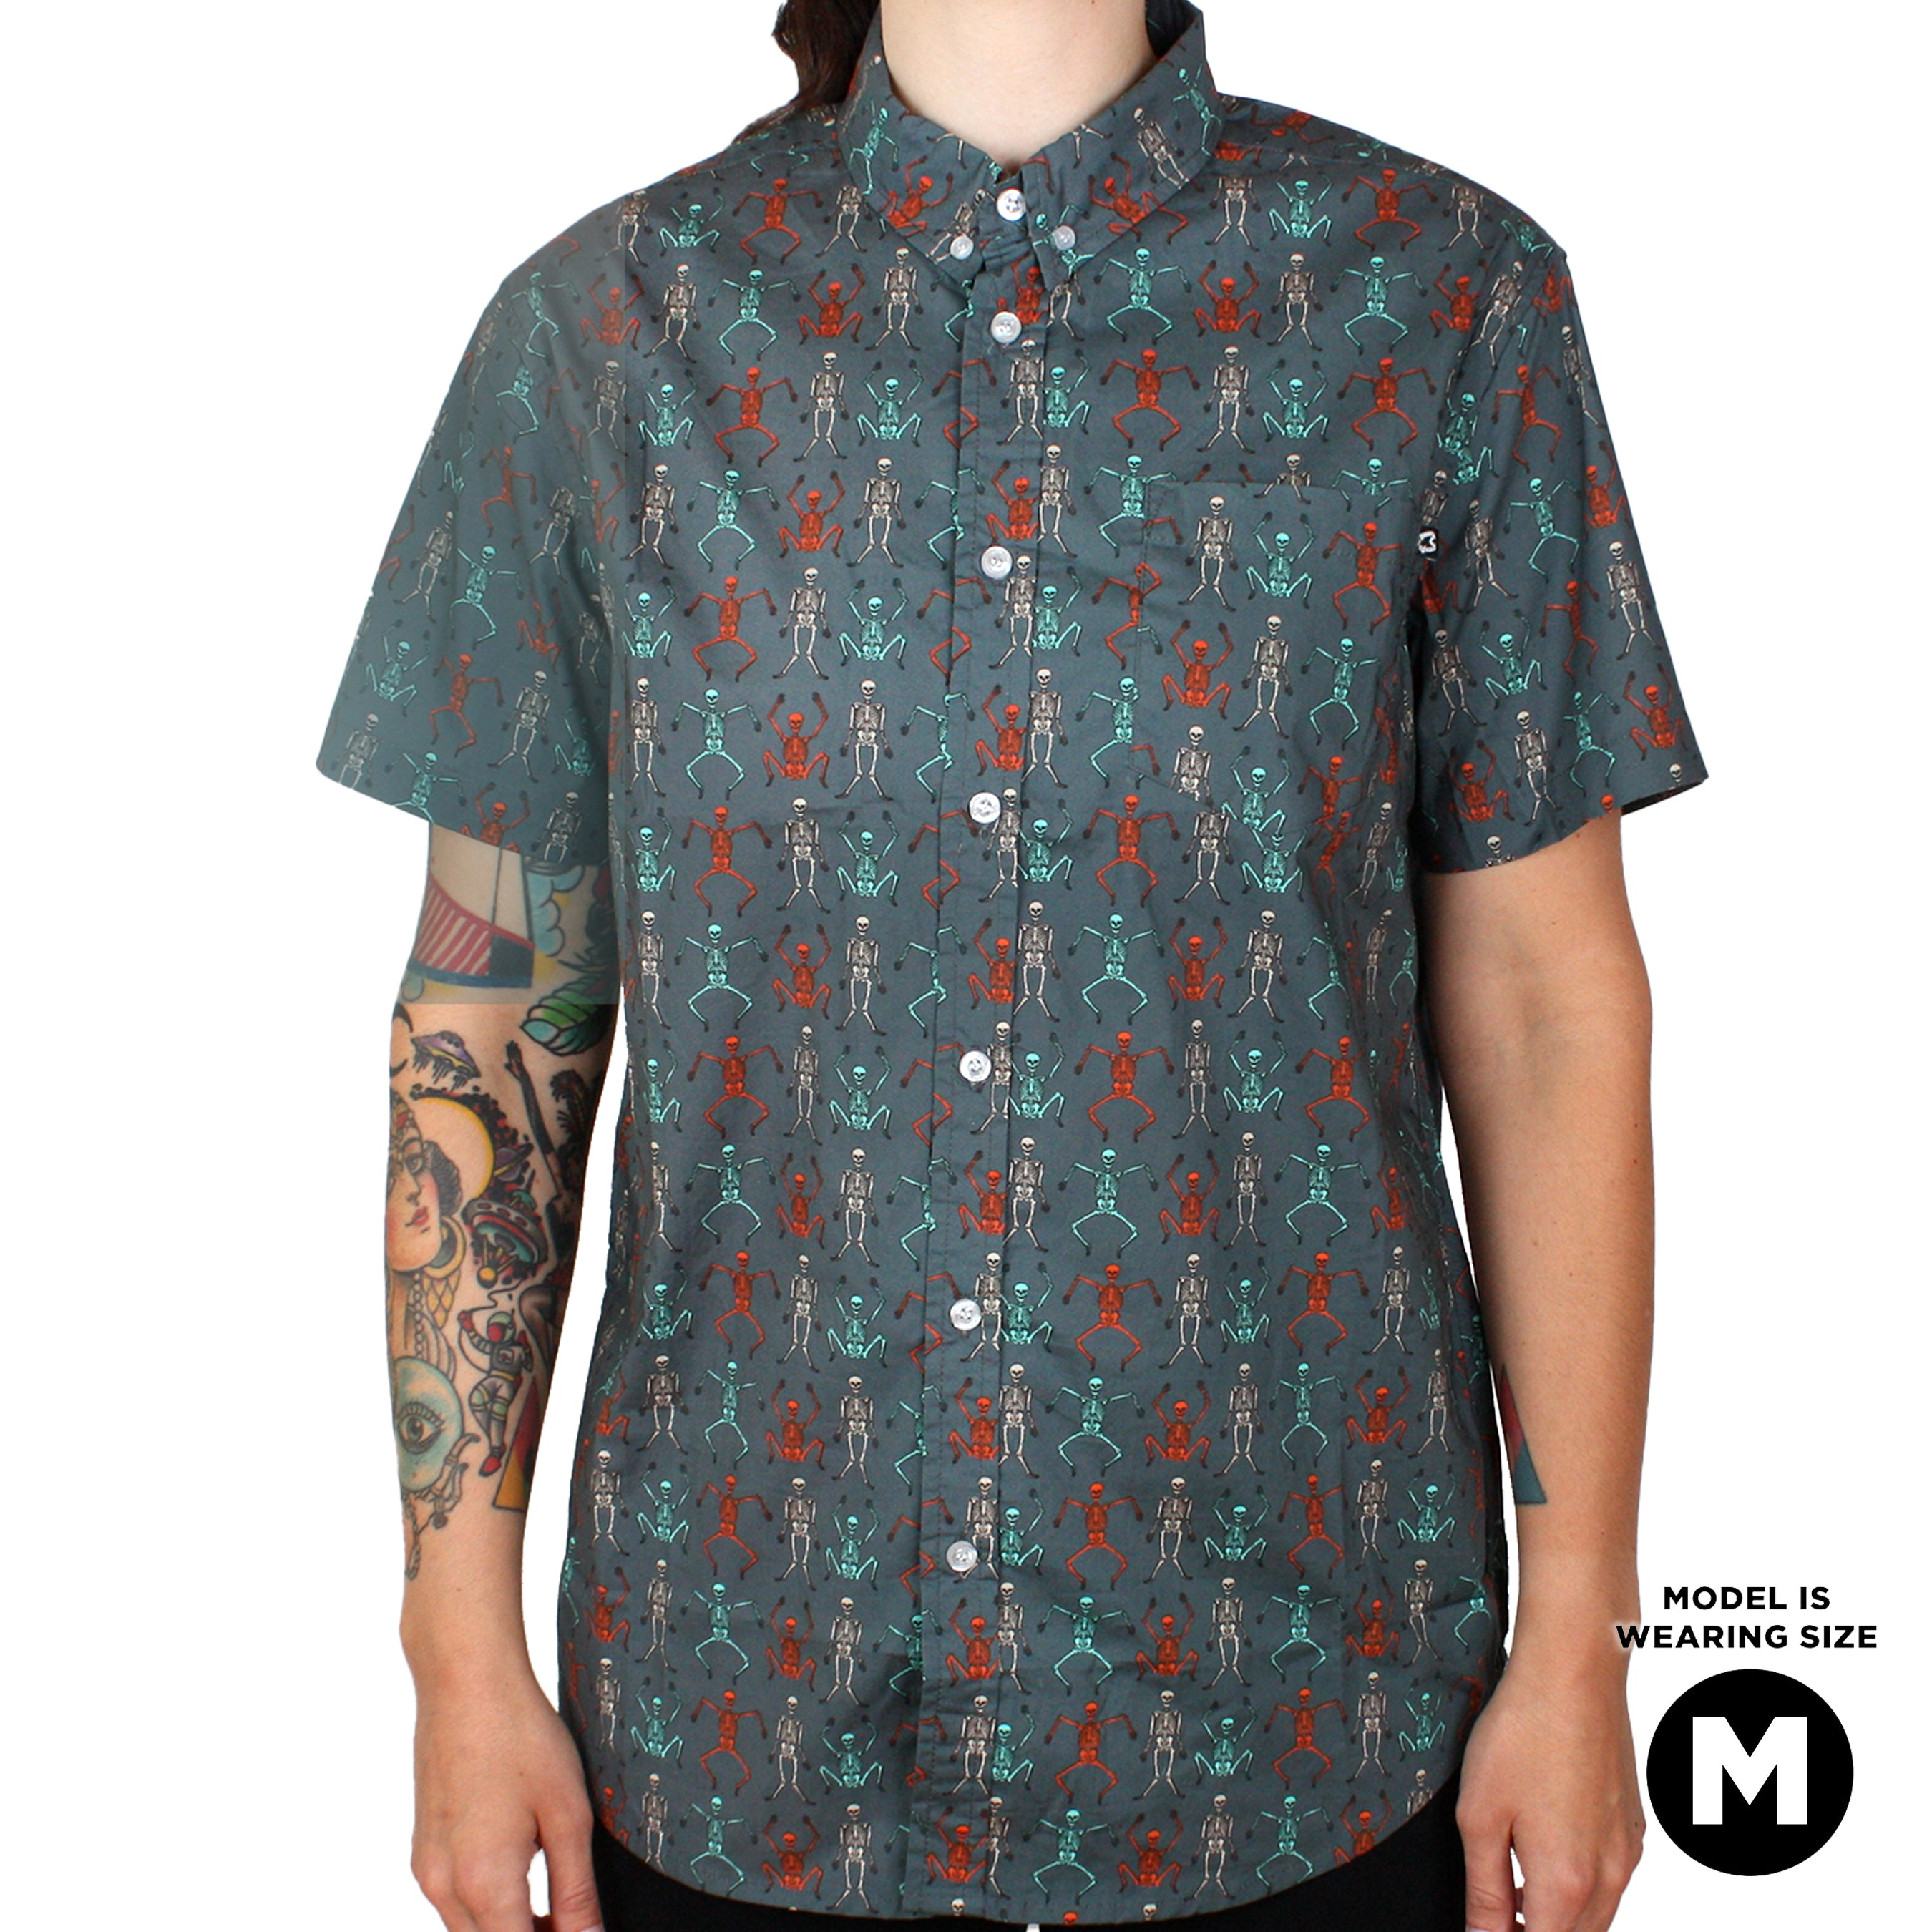 Beistle® Dancing Skeletons Button-up Shirt